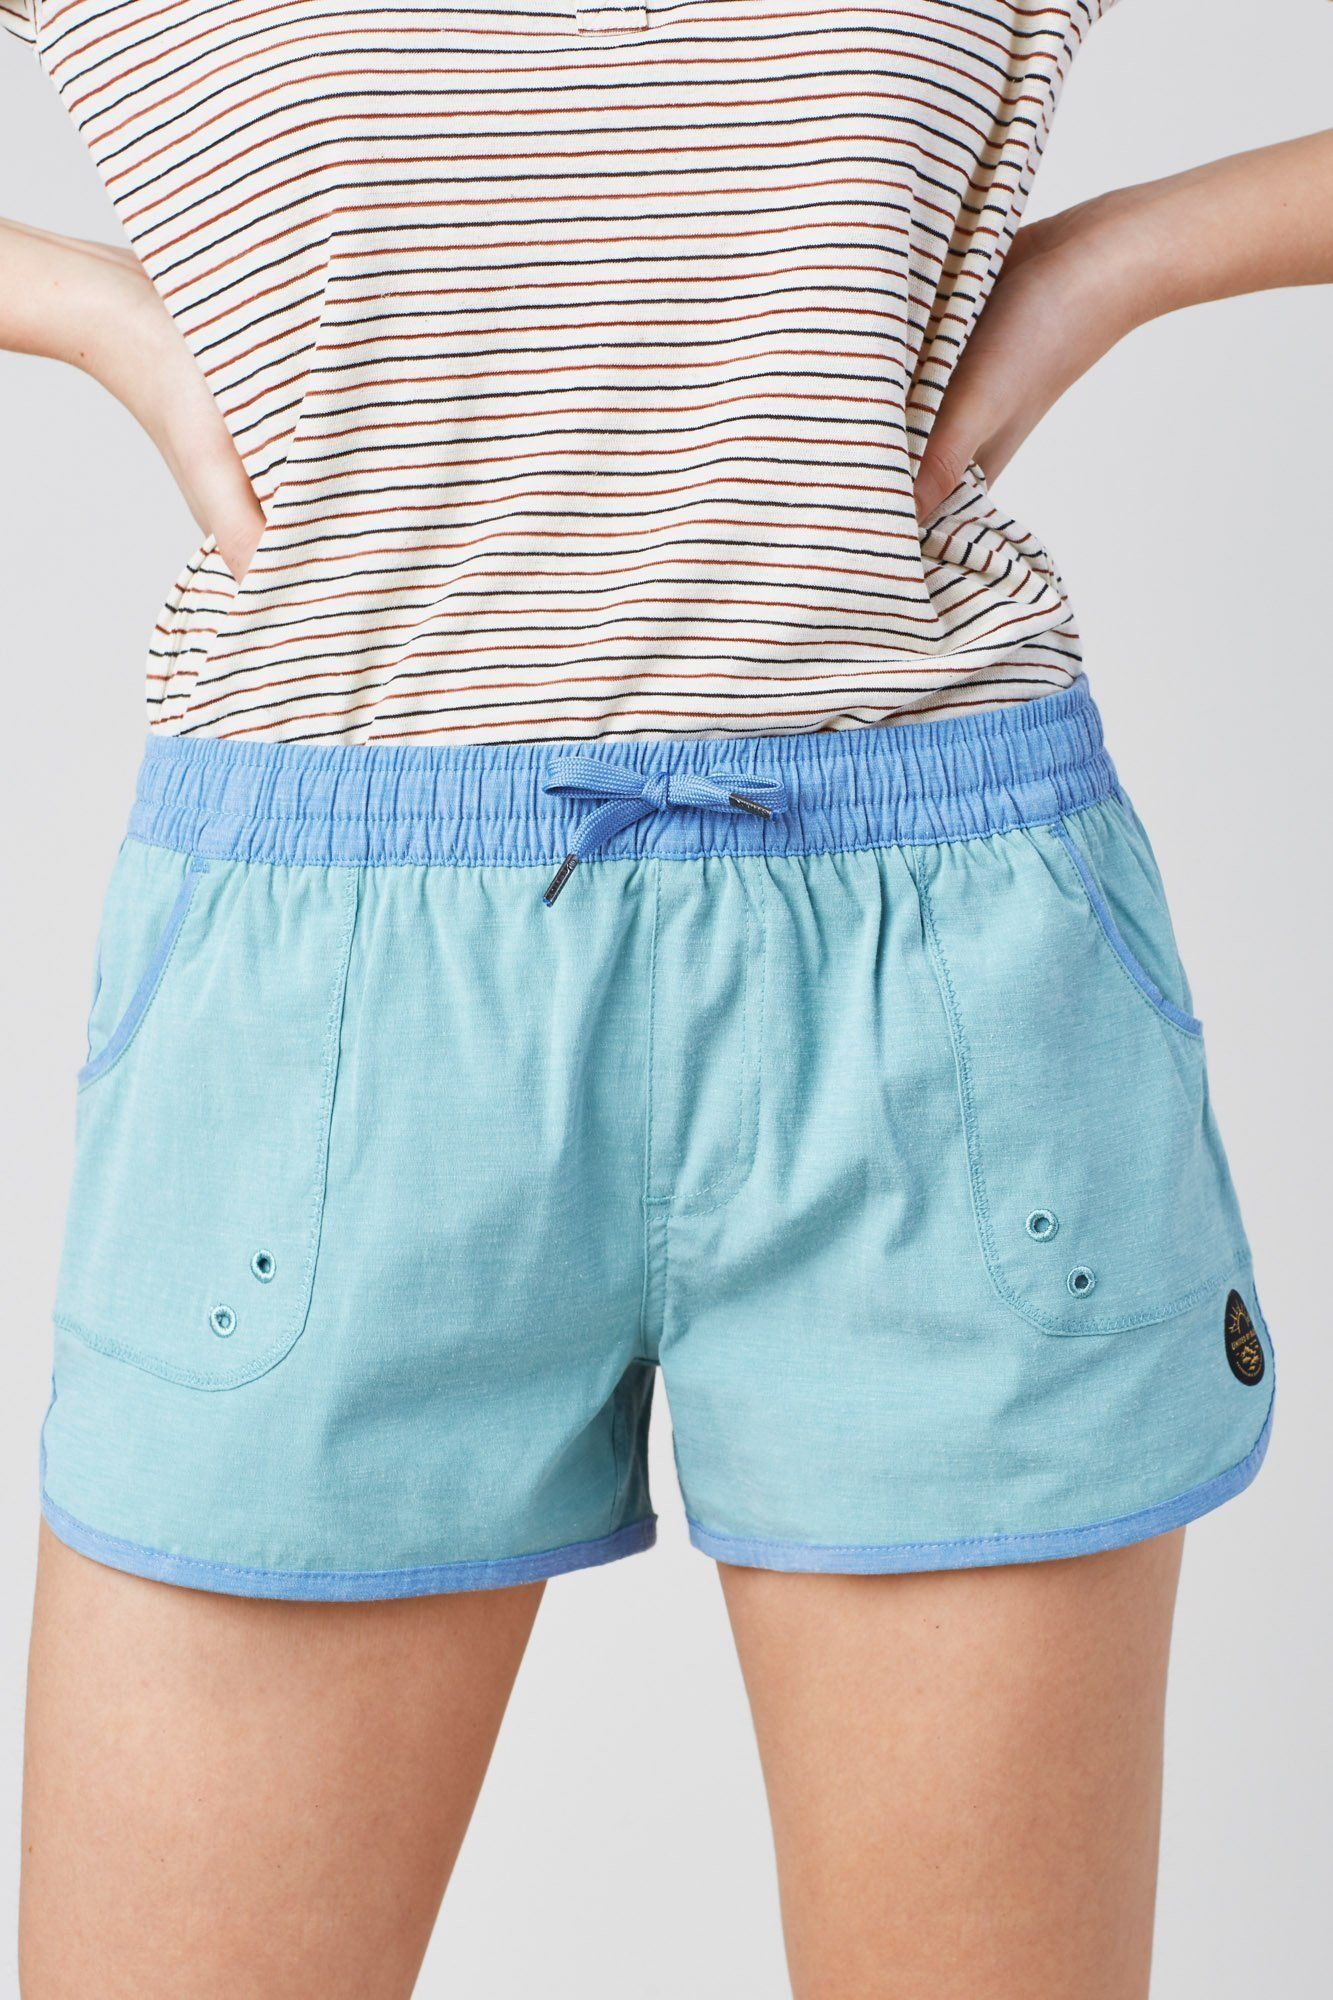 United By Blue - W's Shoreline Board Short - Sea Green - Organic Cotton & Recycled polyester - Weekendbee - sustainable sportswear